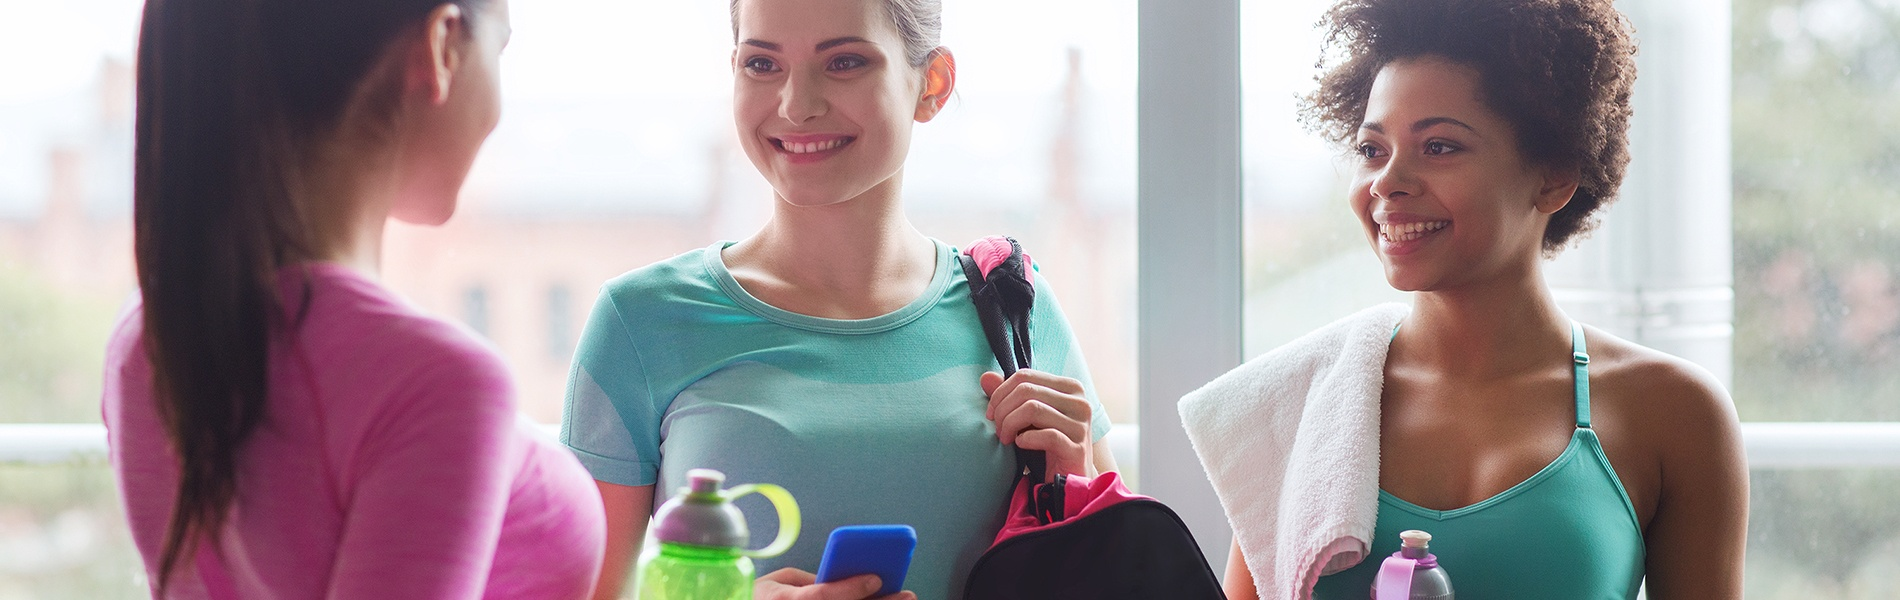 Increase memberships with your fitness website.jpg